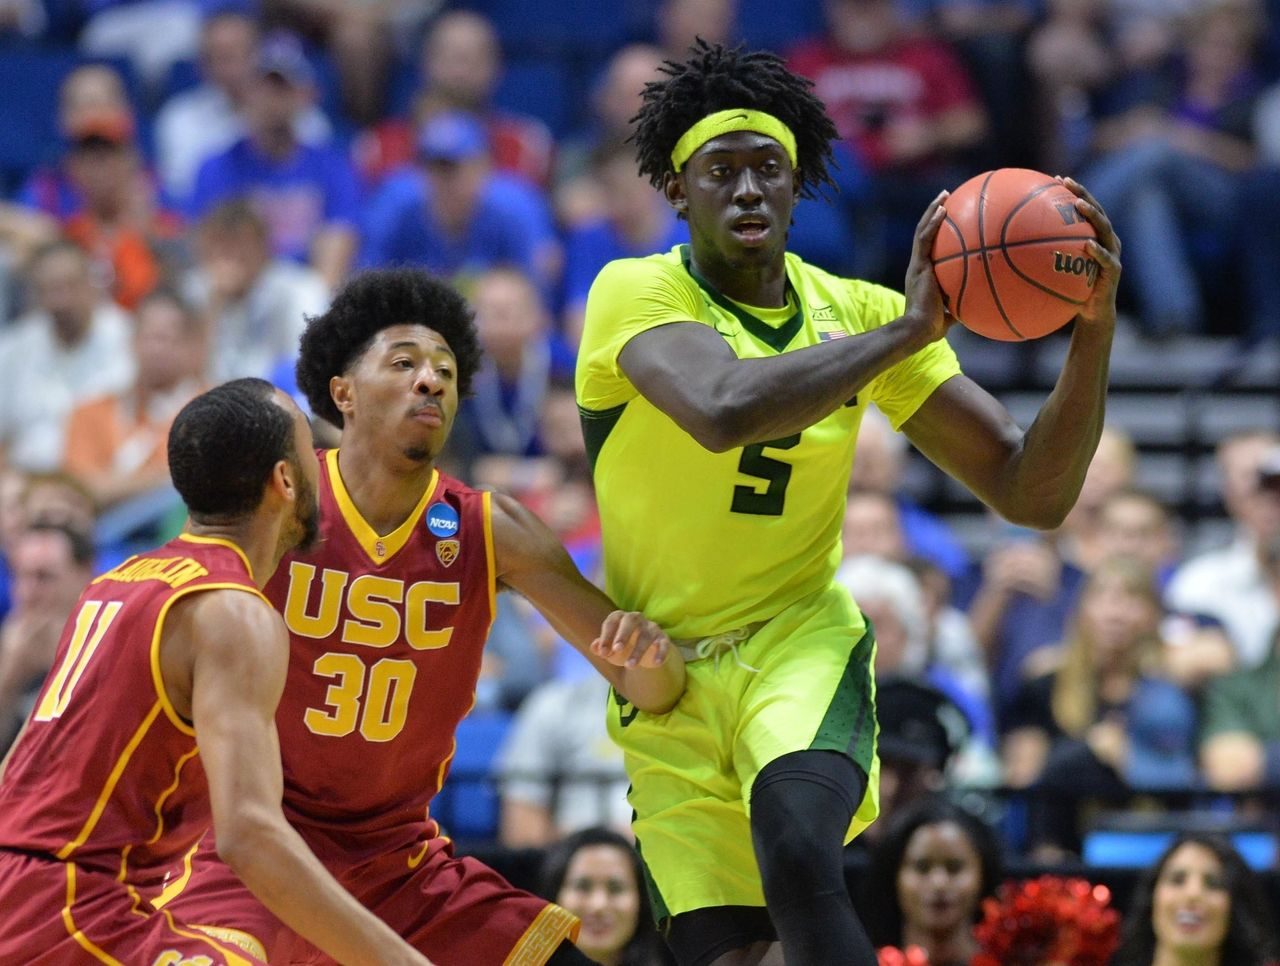 Cropped_2017-03-20t002250z_61315980_nocid_rtrmadp_3_ncaa-basketball-ncaa-tournament-second-round-baylor-vs-usc